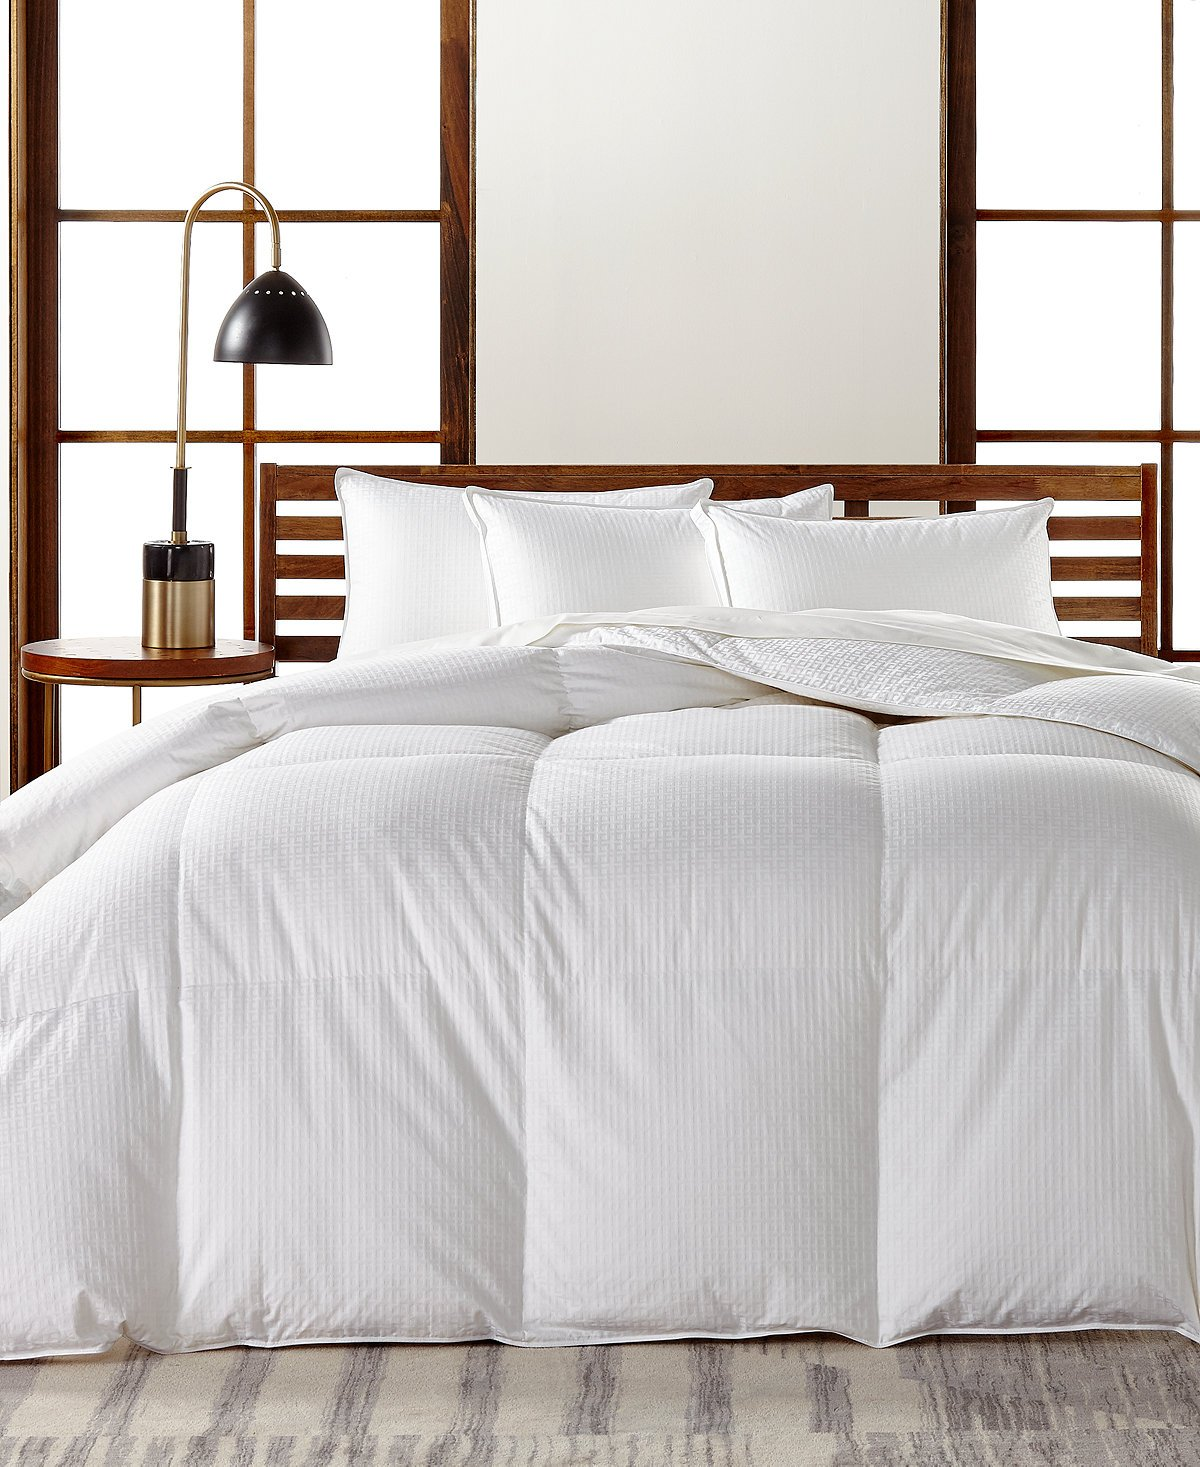 Hotel Collection European White Goose Down Medium Weight King Comforter, Hypoallergenic UltraClean Down